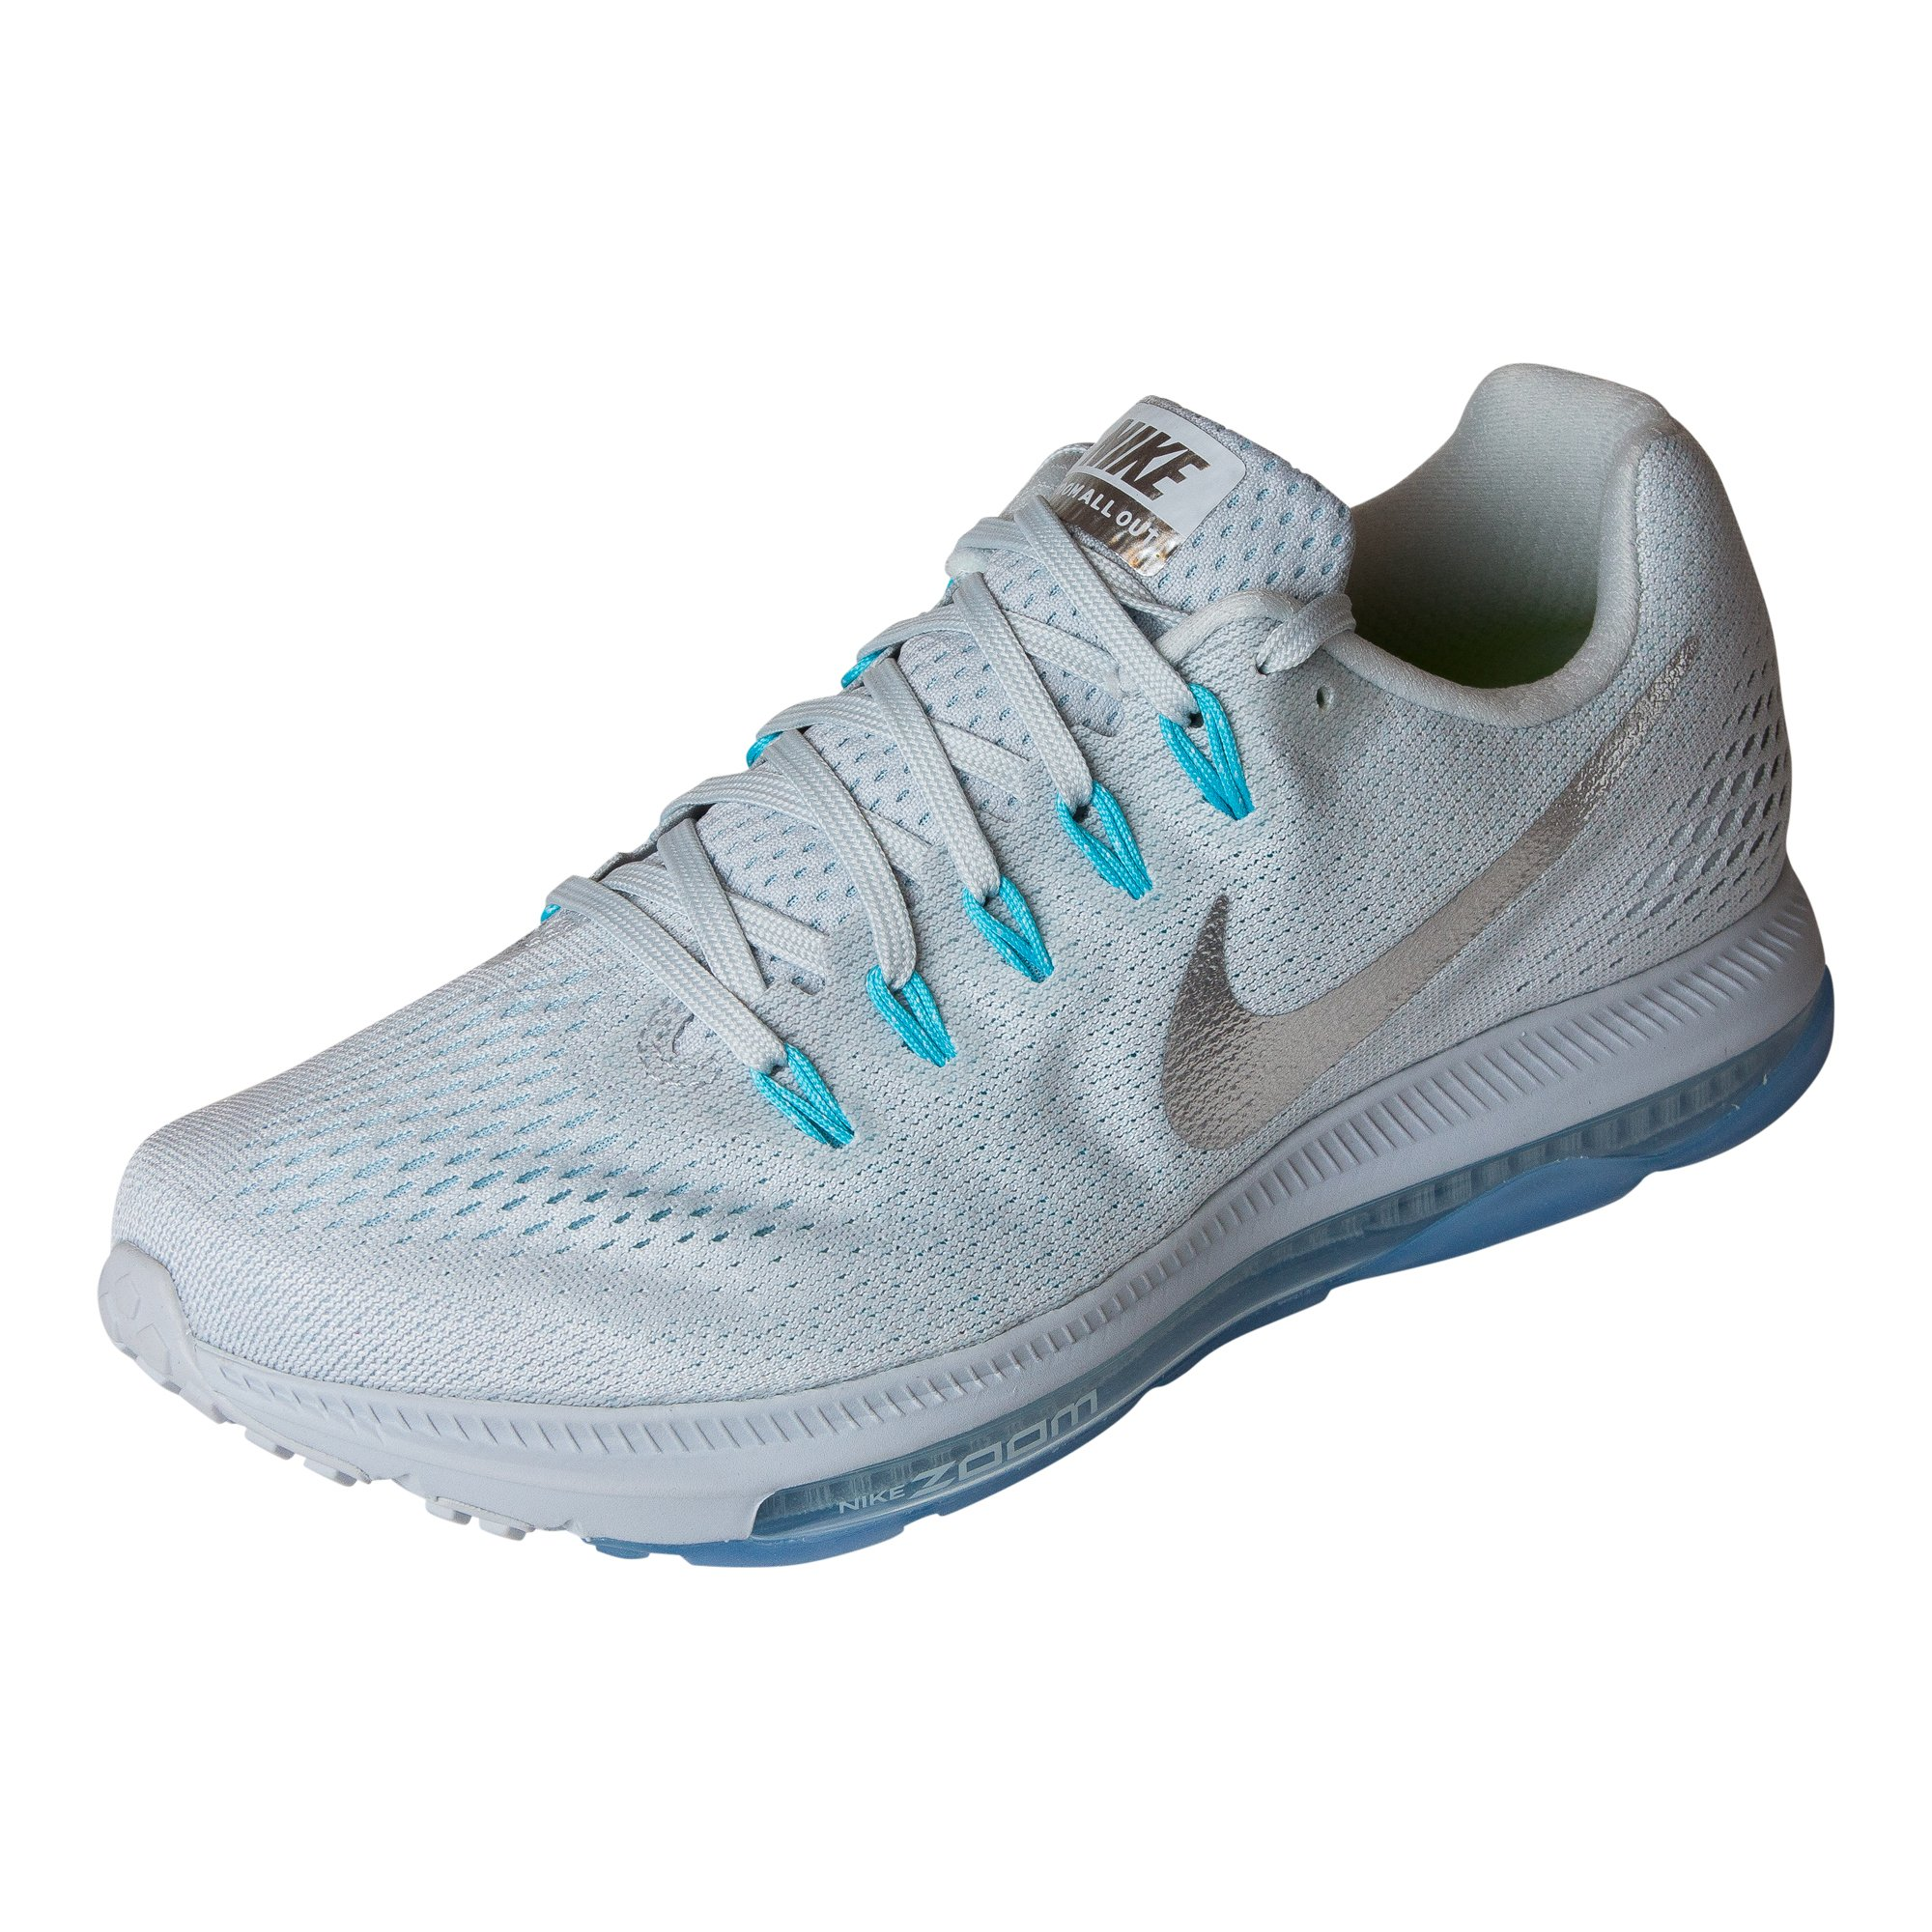 Nike Zoom All Out Low Size 7.5 Womens Running Pure Platinum/Chrome-Glacier Blue Shoes by NIKE (Image #1)